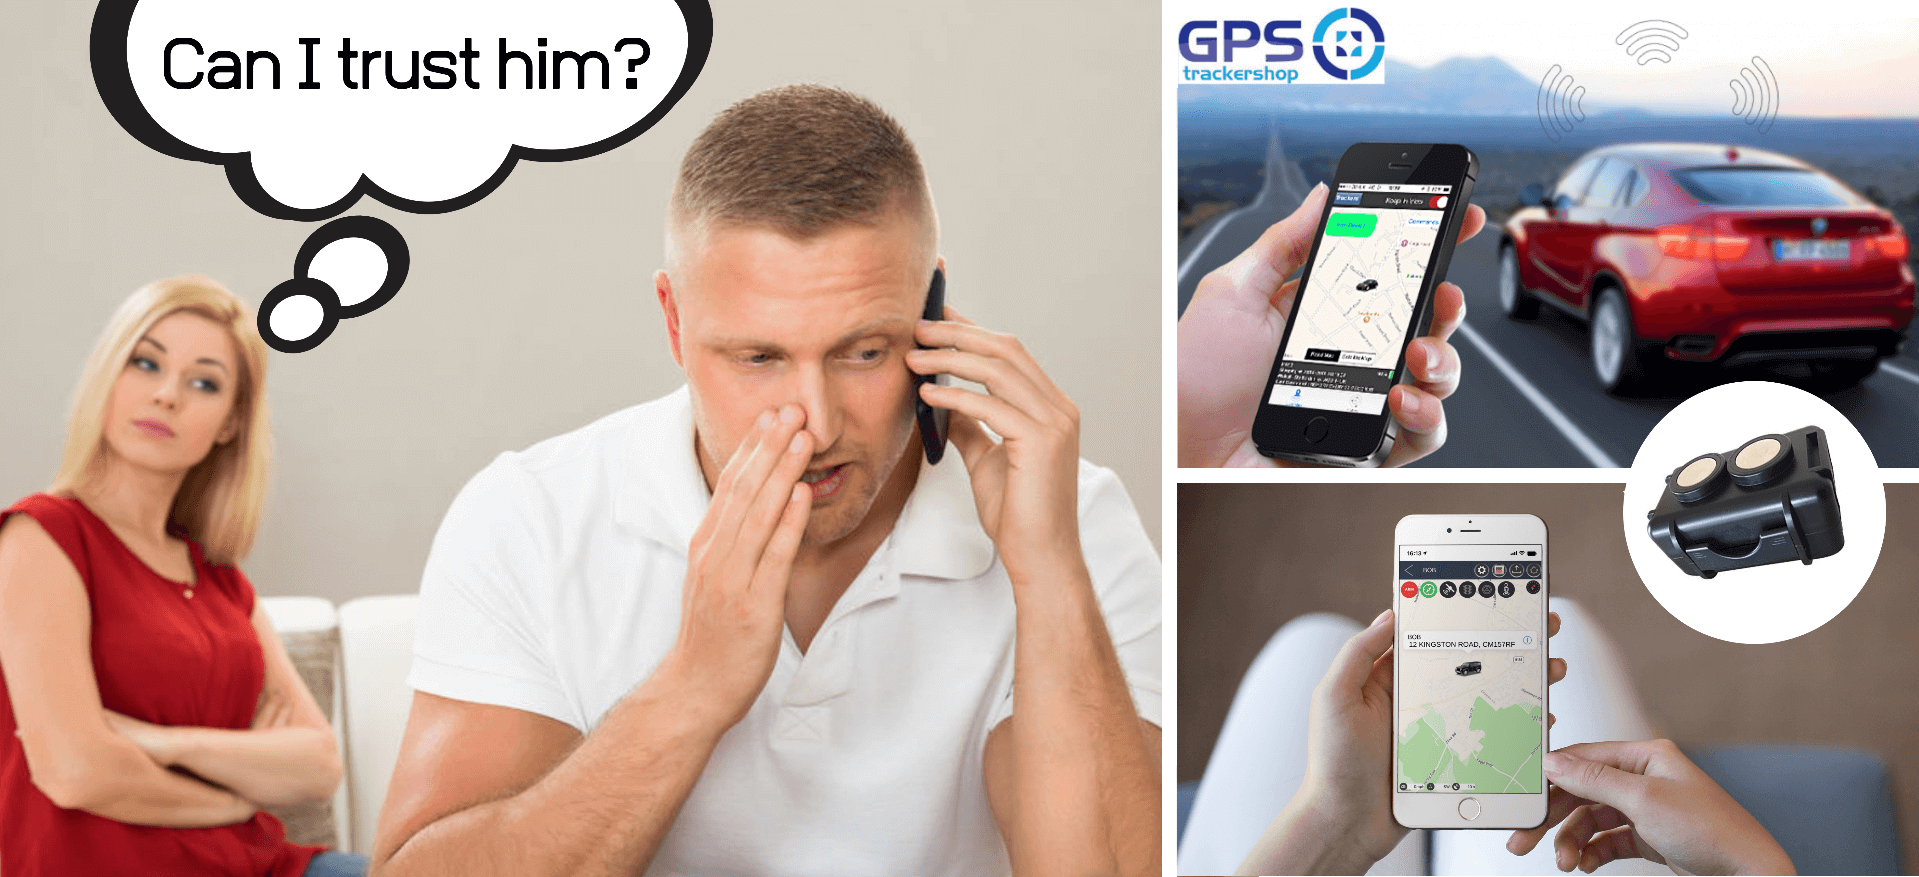 Car Tracking Devices For A Cheating Spouse Trackershop Uk